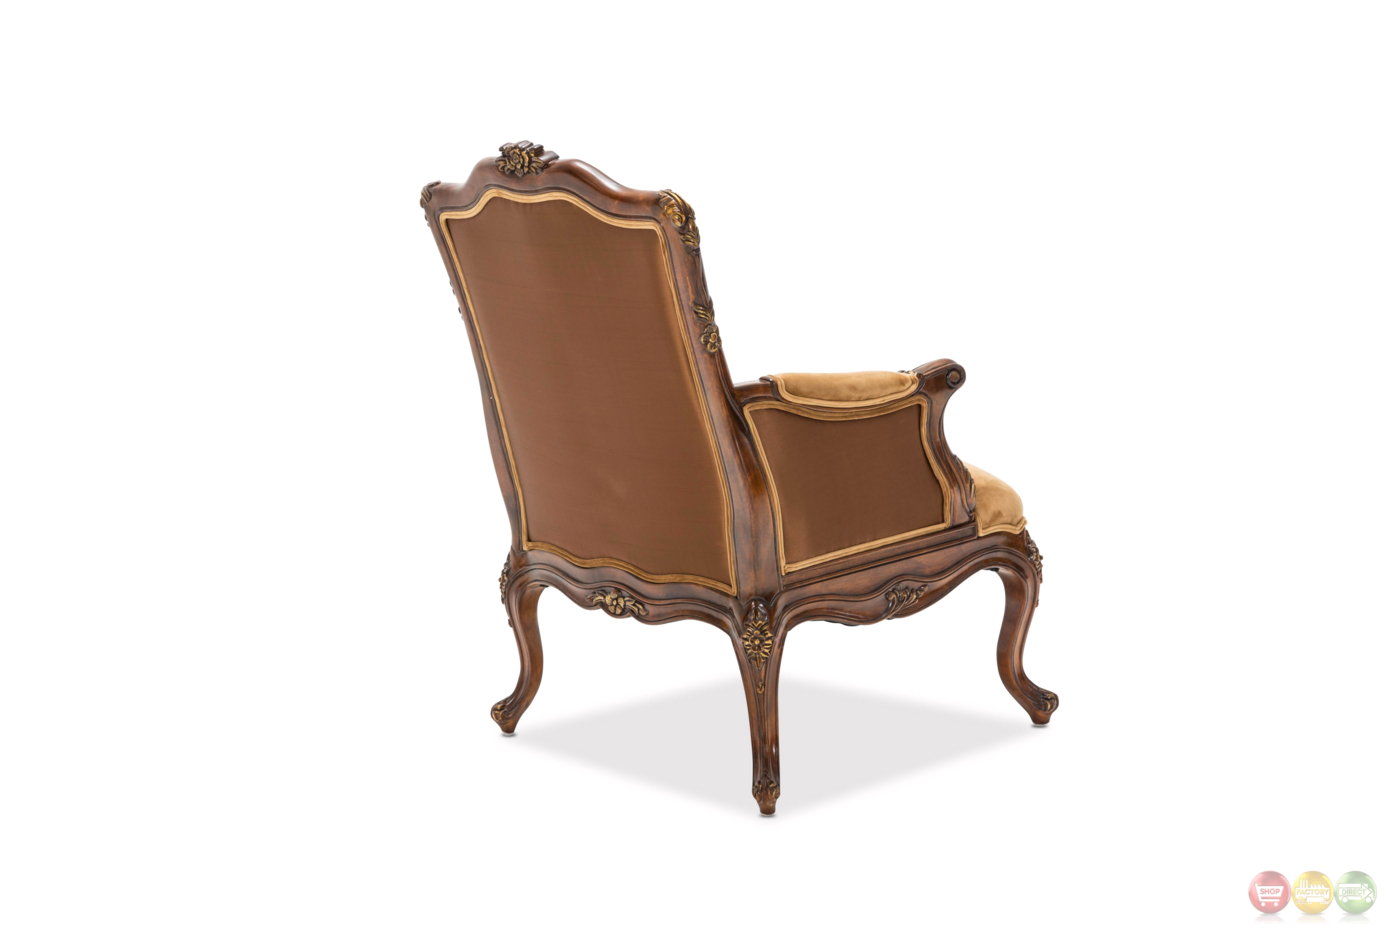 wood frame accent chairs butterfly chair cover sienna victorial in butterscotch with carved